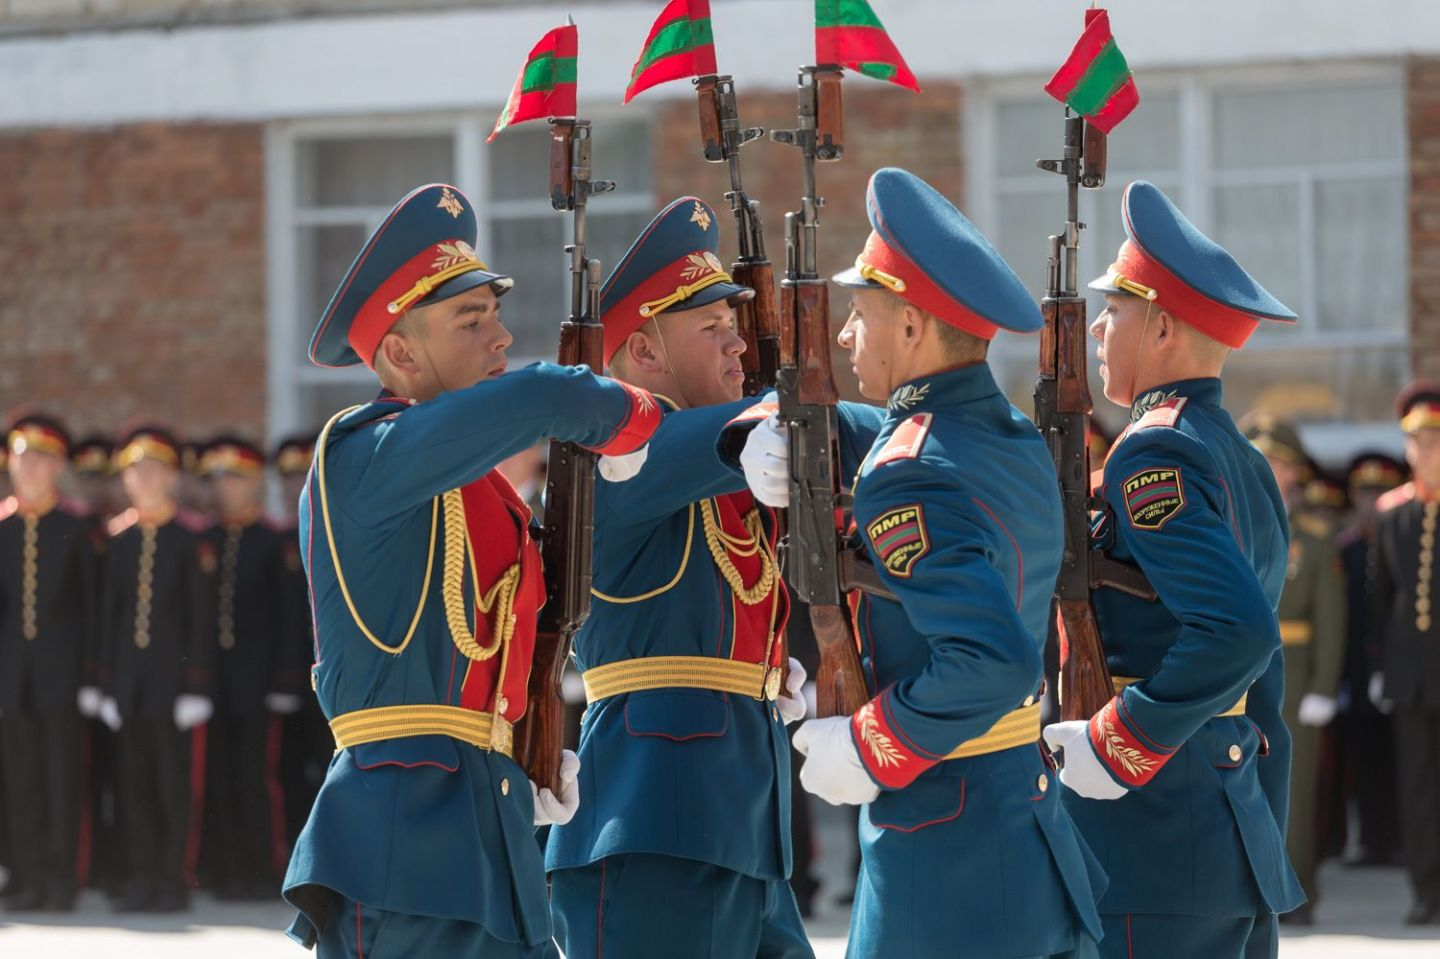 The Tiraspol Suvorov Military School's opening ceremony in 2017 in Tiraspol.